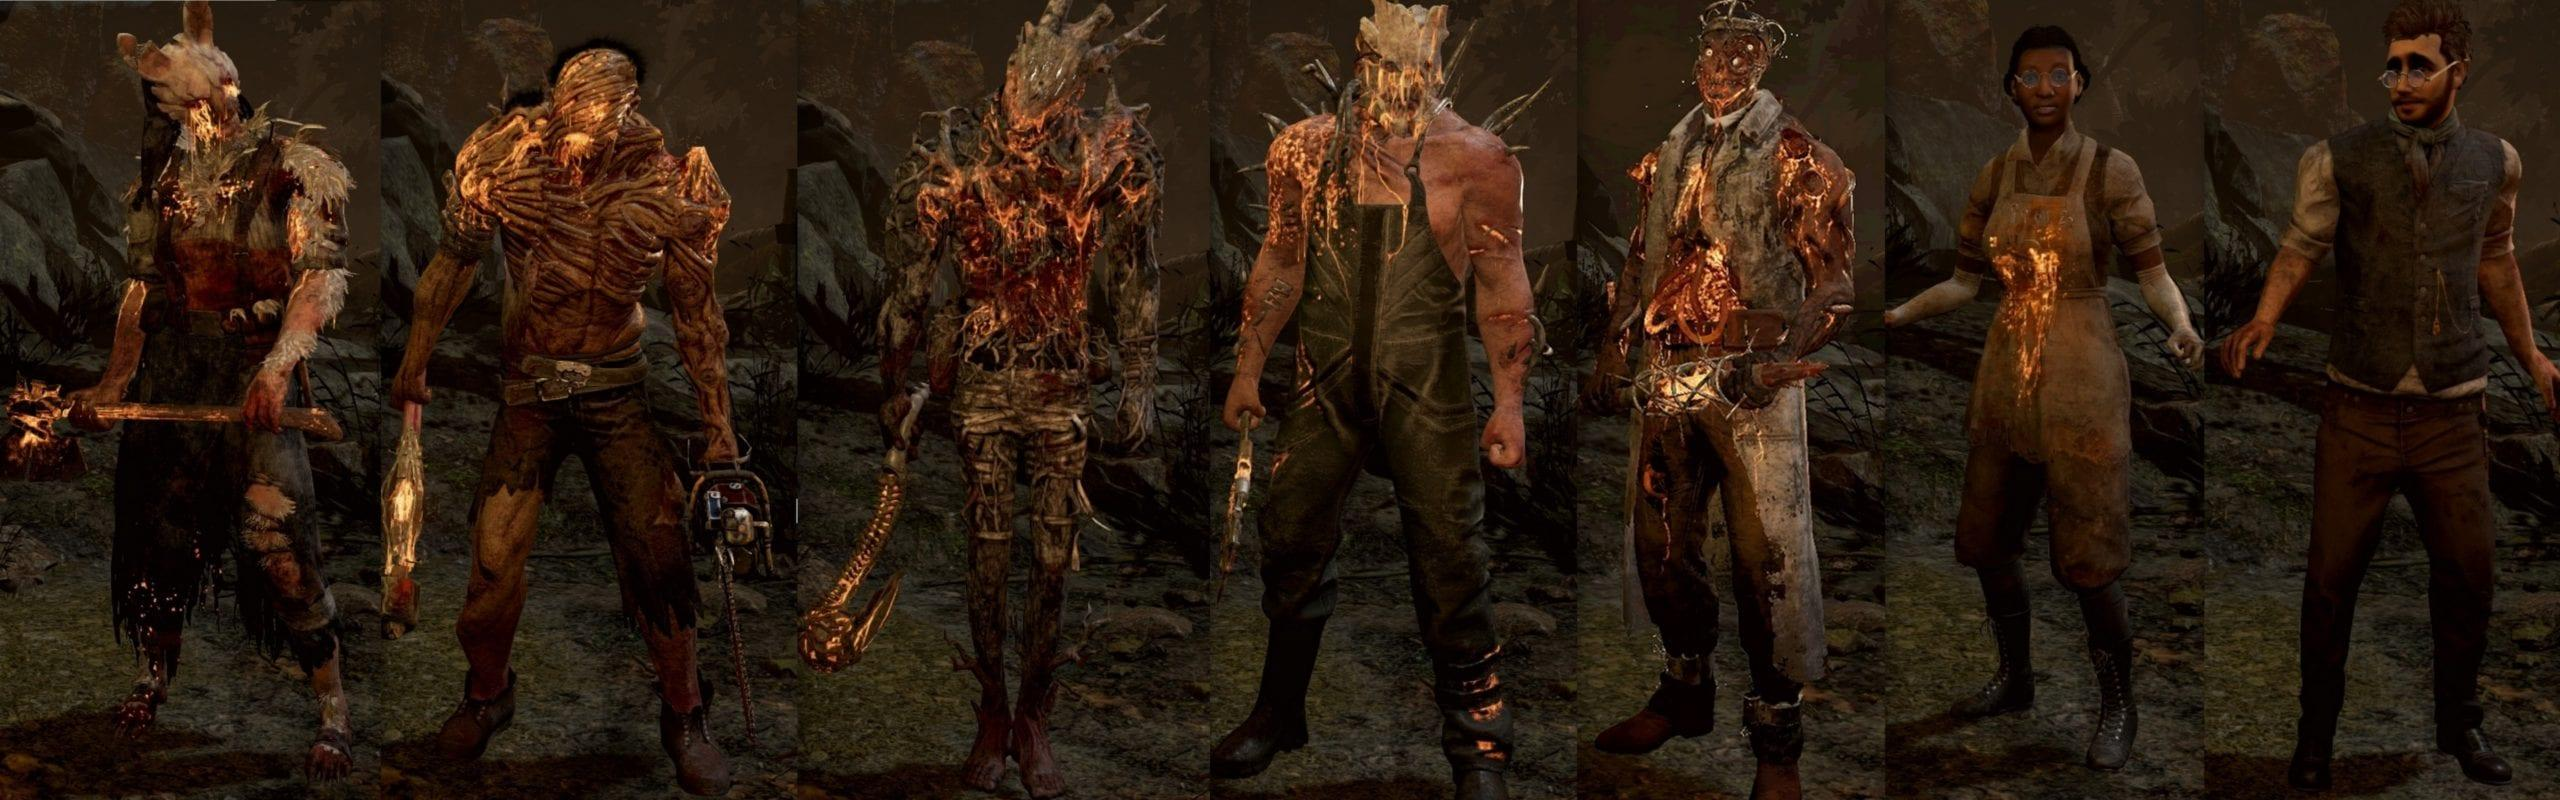 Dead By Daylight: Le Nouveau Tueur S'appelle The Blight Et